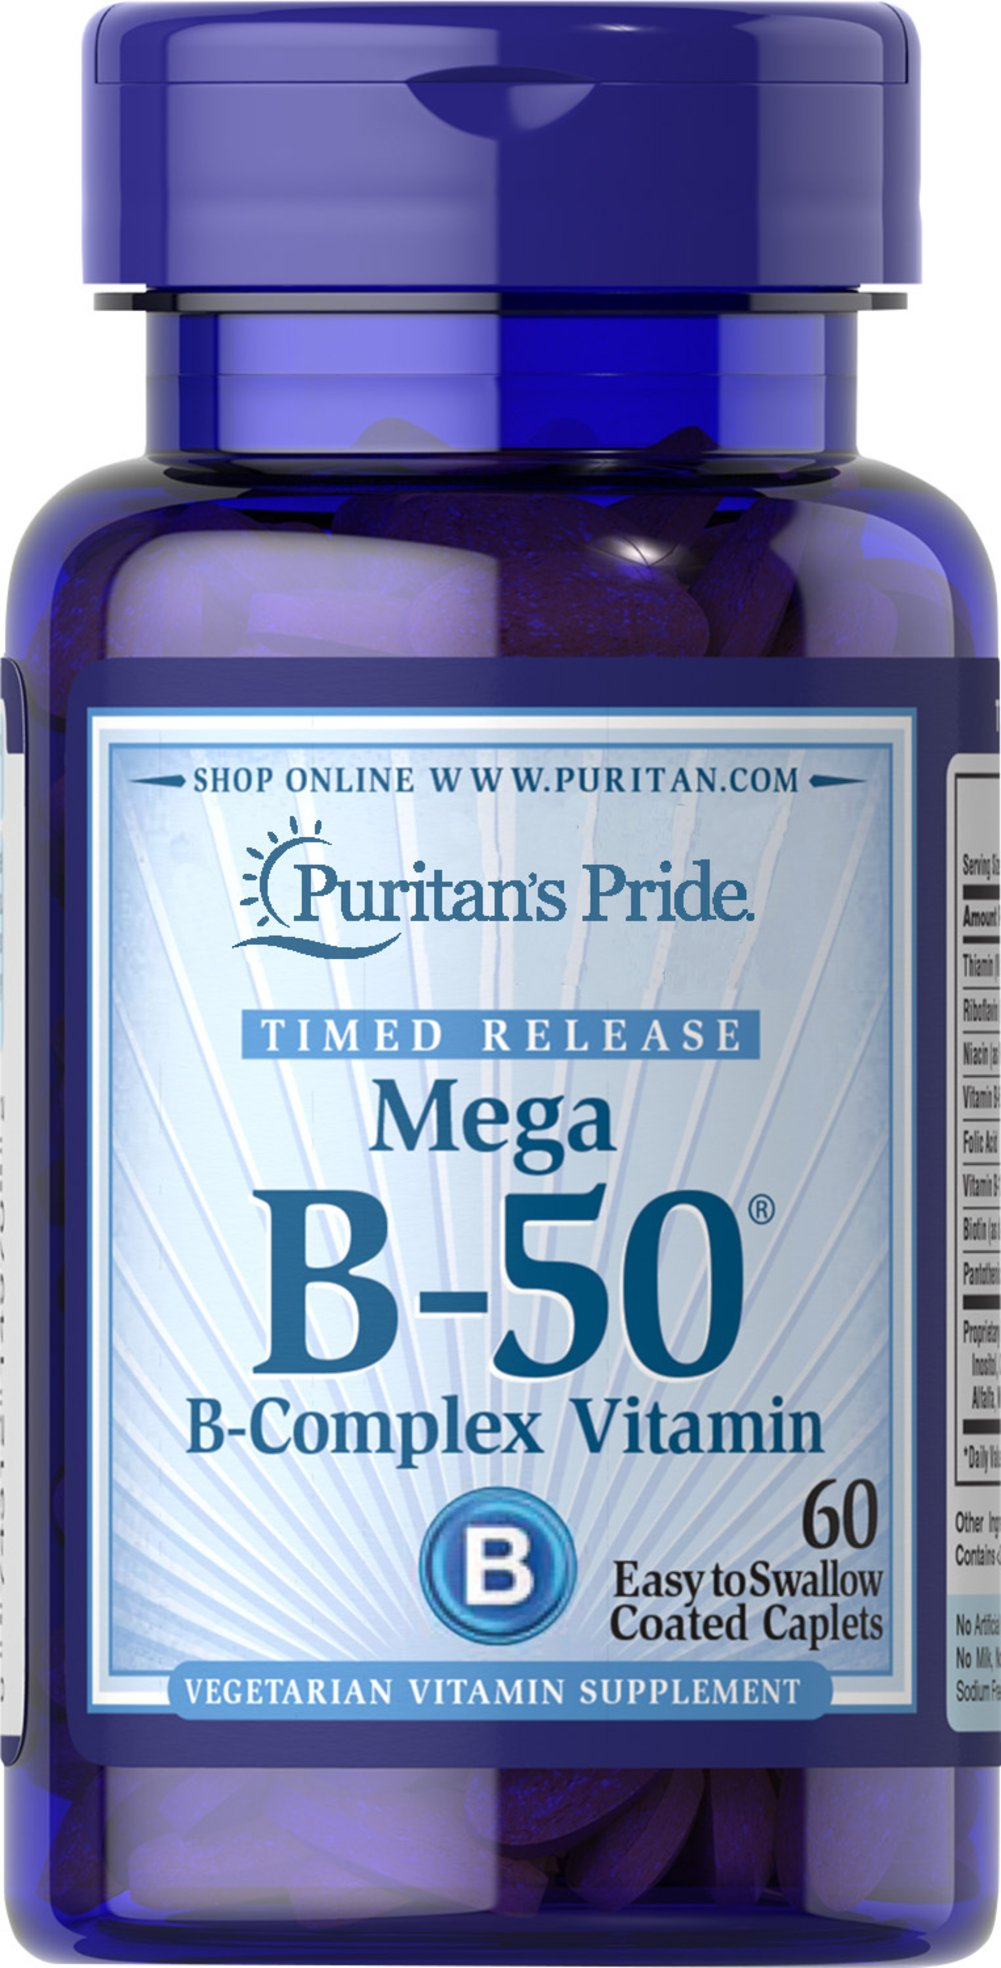 Vitamin B-50® Complex Timed Release <p>When taken together in a Vitamin B-50® complex formula, the B-Vitamins help to maintain the health of the nerves, skin, eyes and hair.** Each tablet is time released to provide a steady flow of B-Complex to your body.</p> <p>Each serving delivers Thiamin, Riboflavin, Niacin, B-6, B-12, Biotin, Folic Acid, Pantothenic Acid and a Proprietary Blend.</p> 60 Tablets 50 mg $11.99